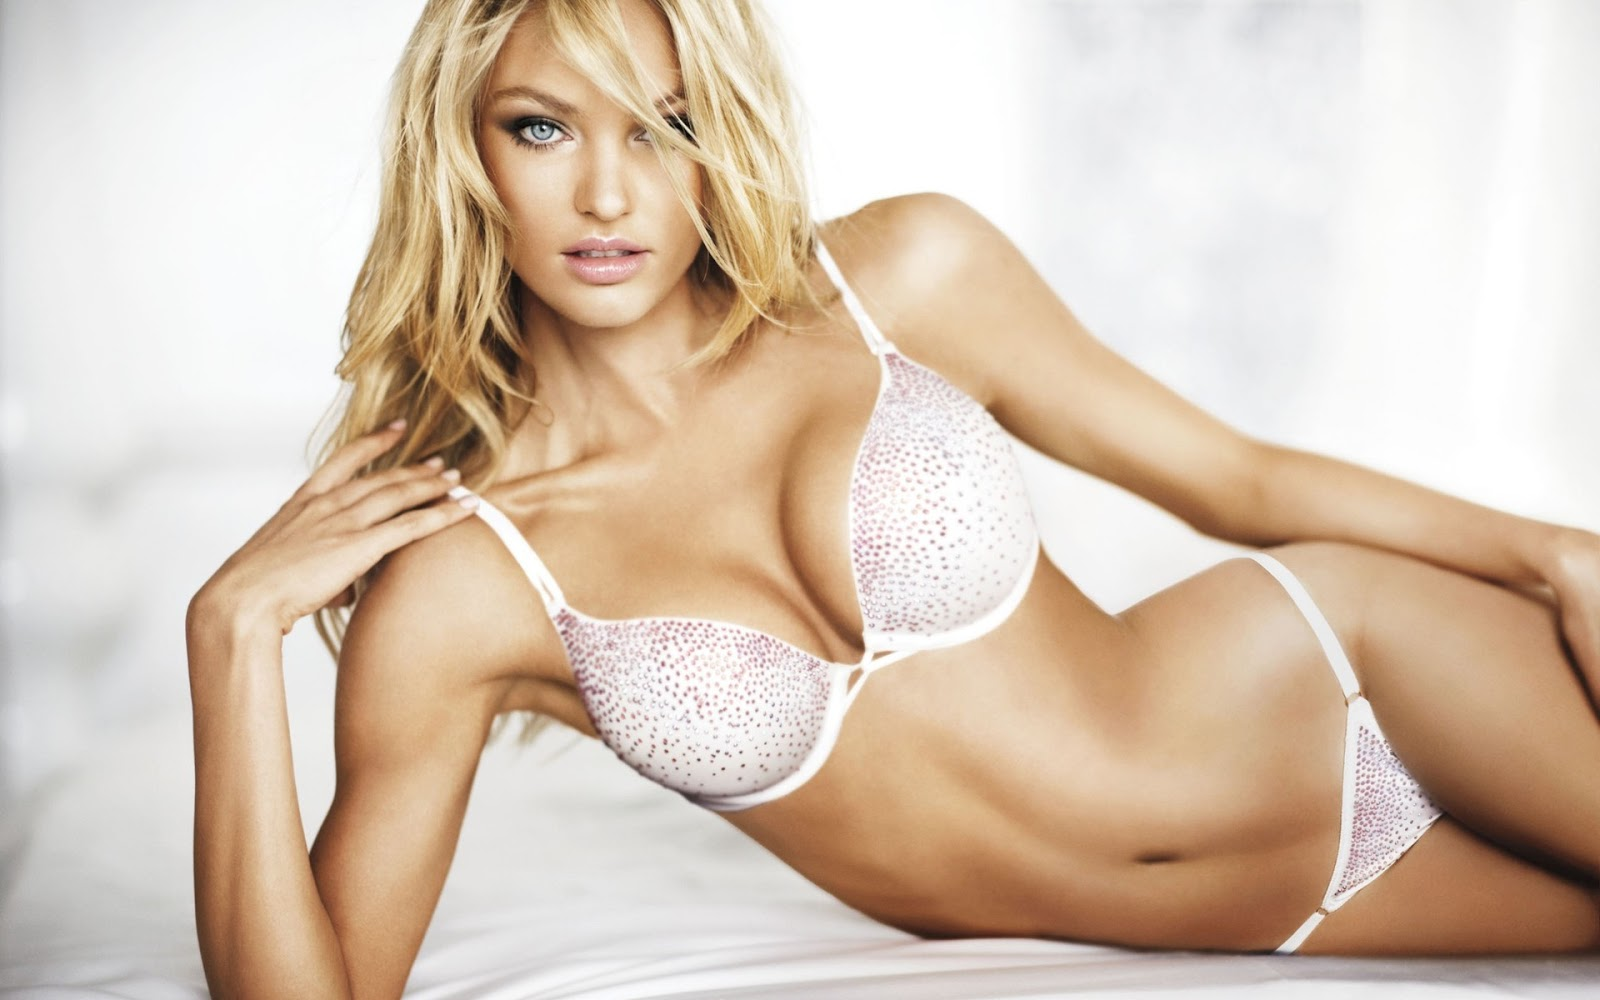 Candice Swanepoel in Diamonds Lingerie